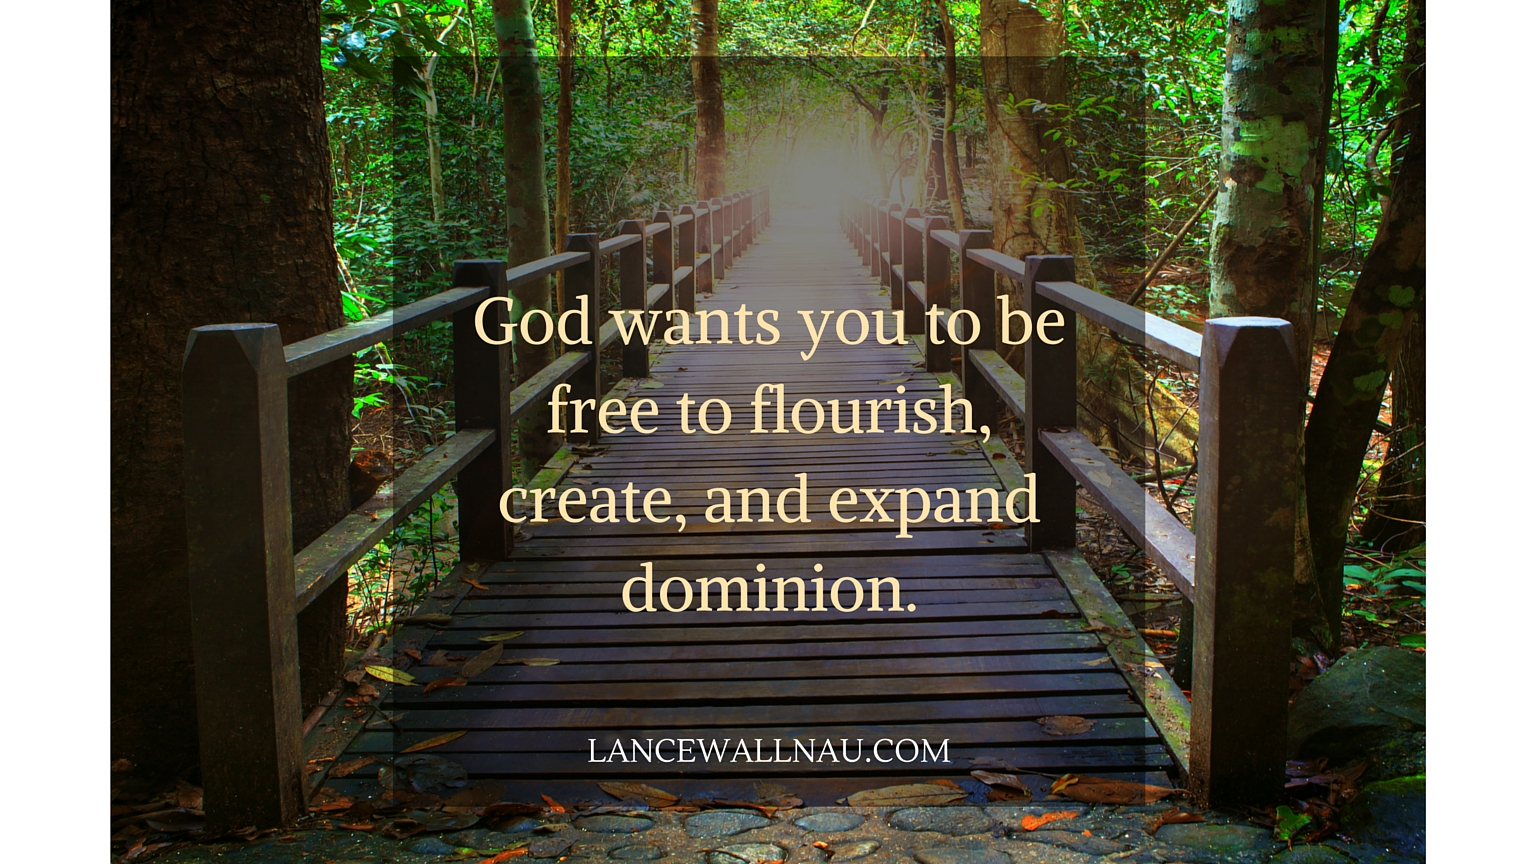 he-wants-you-to-be-free-to-flourish-create-and-expand-dominion